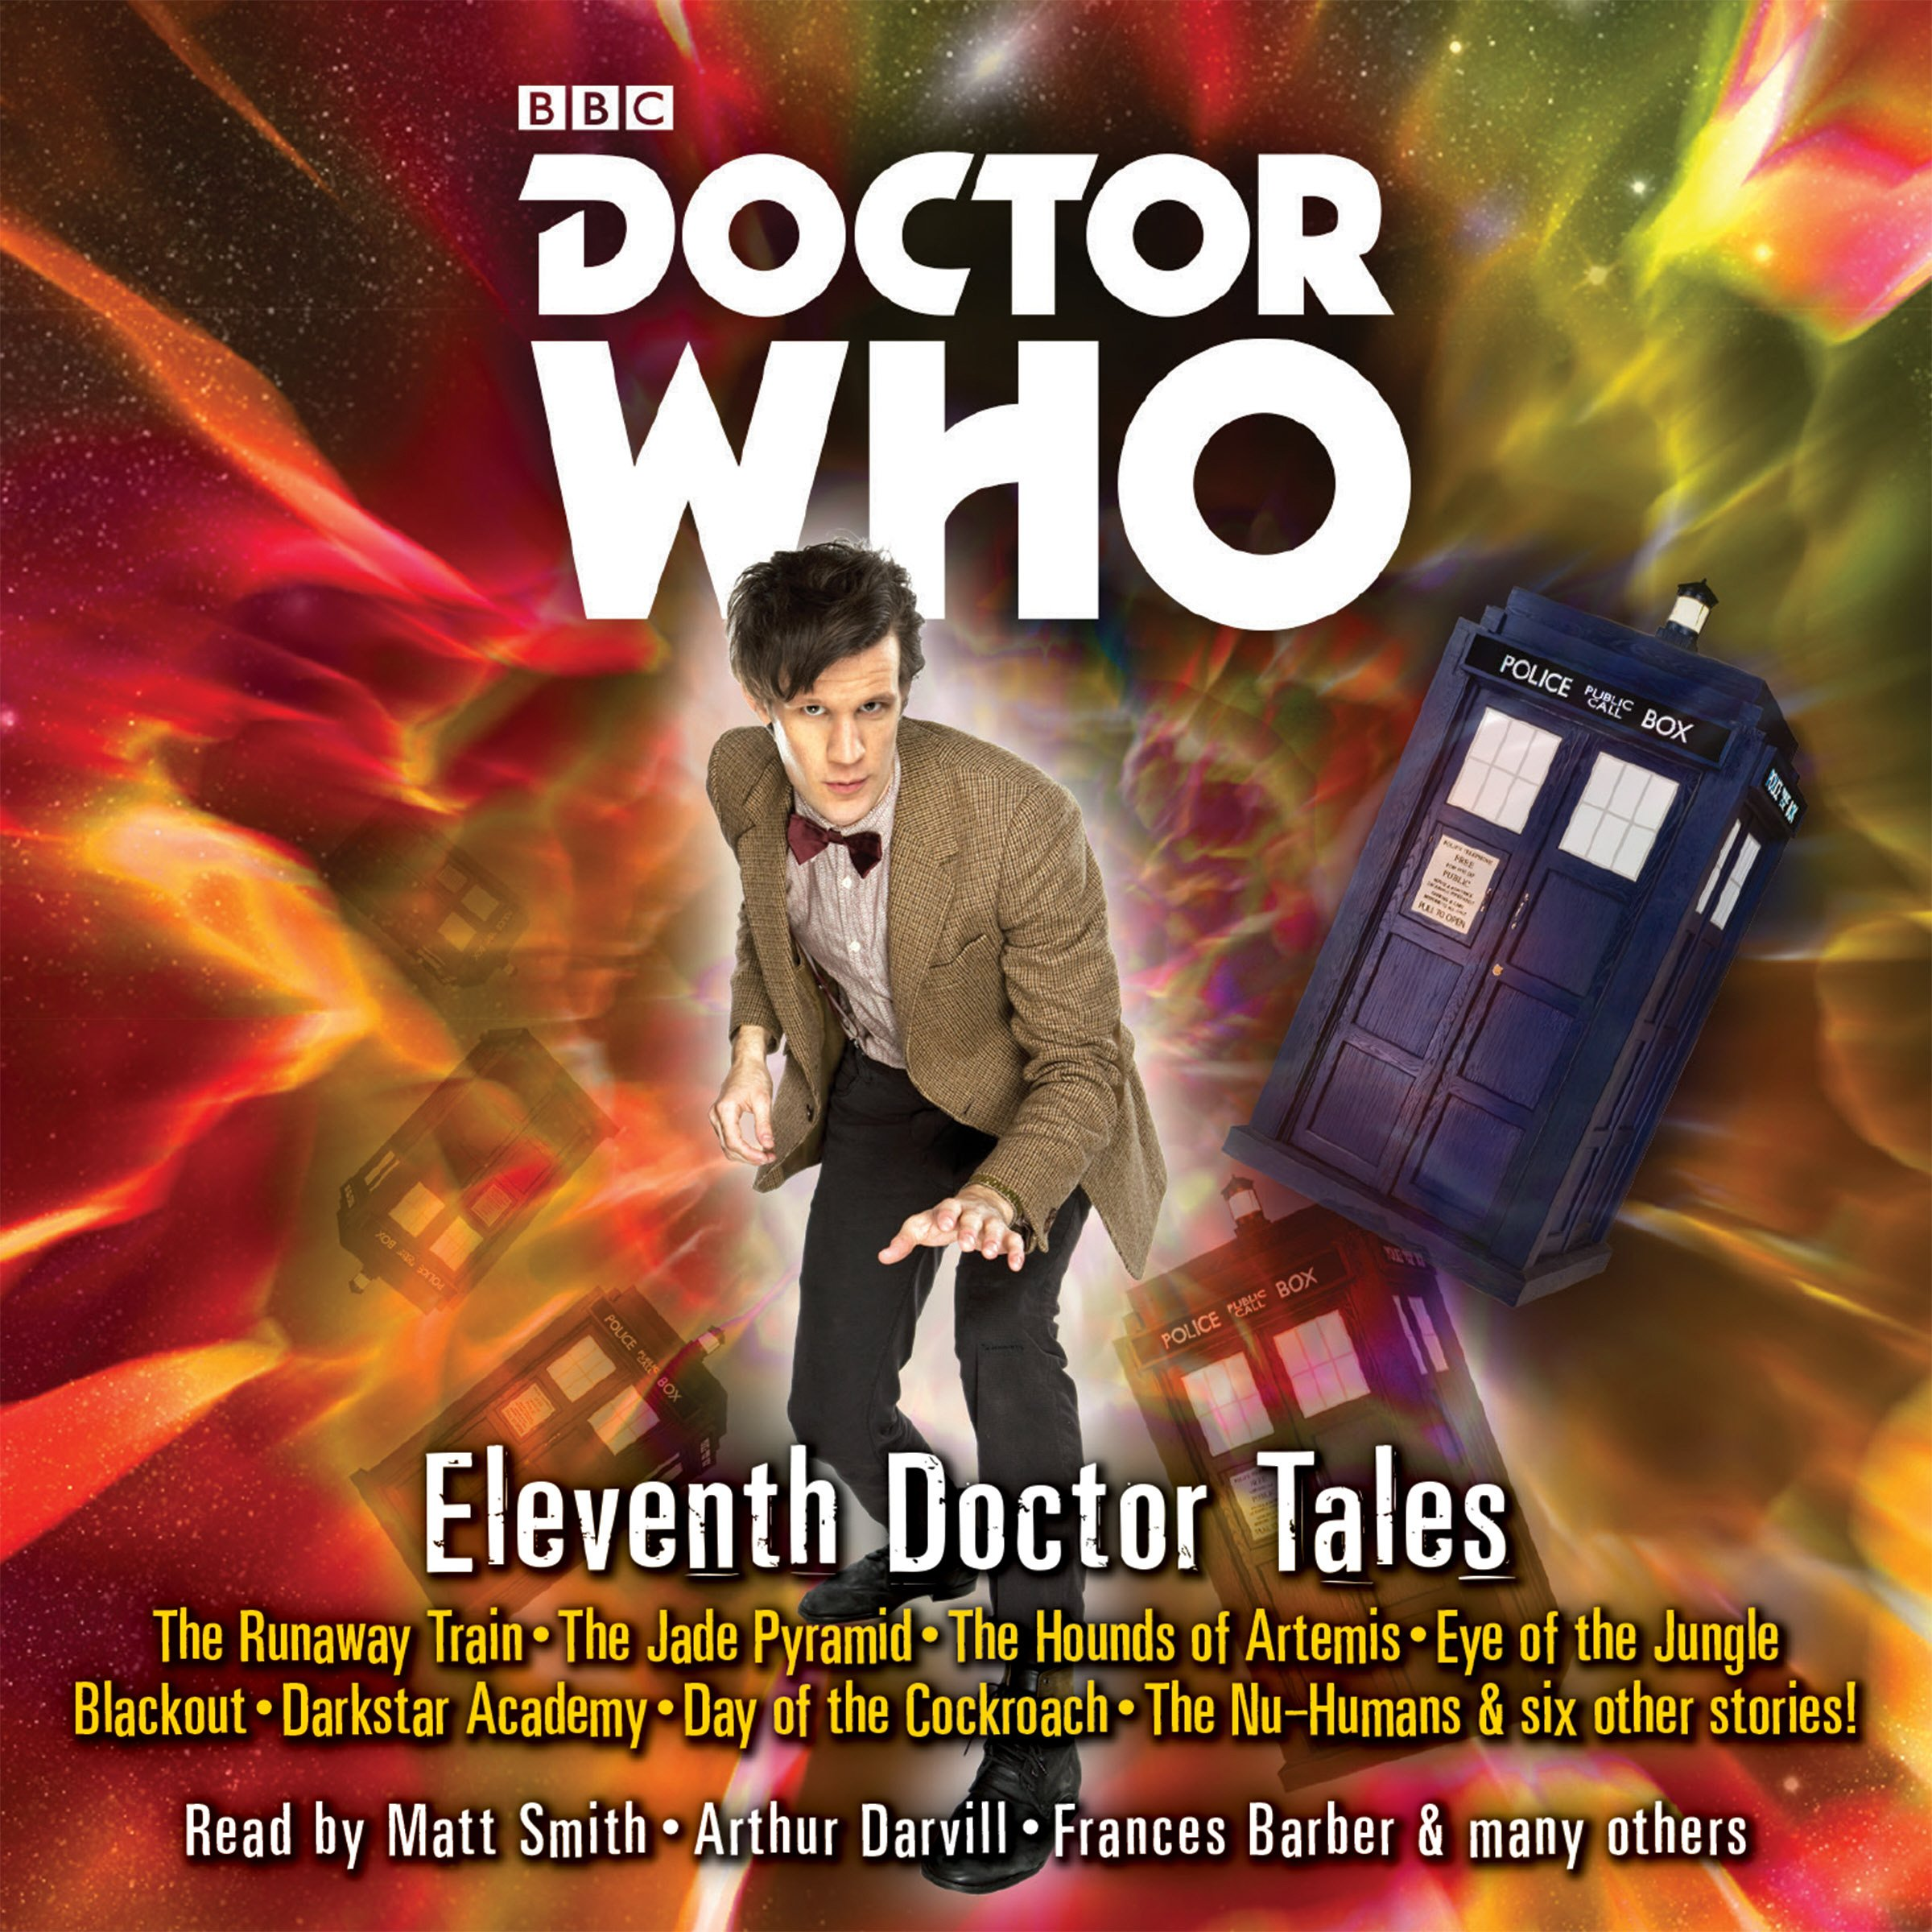 The Eleventh Doctor Adventures